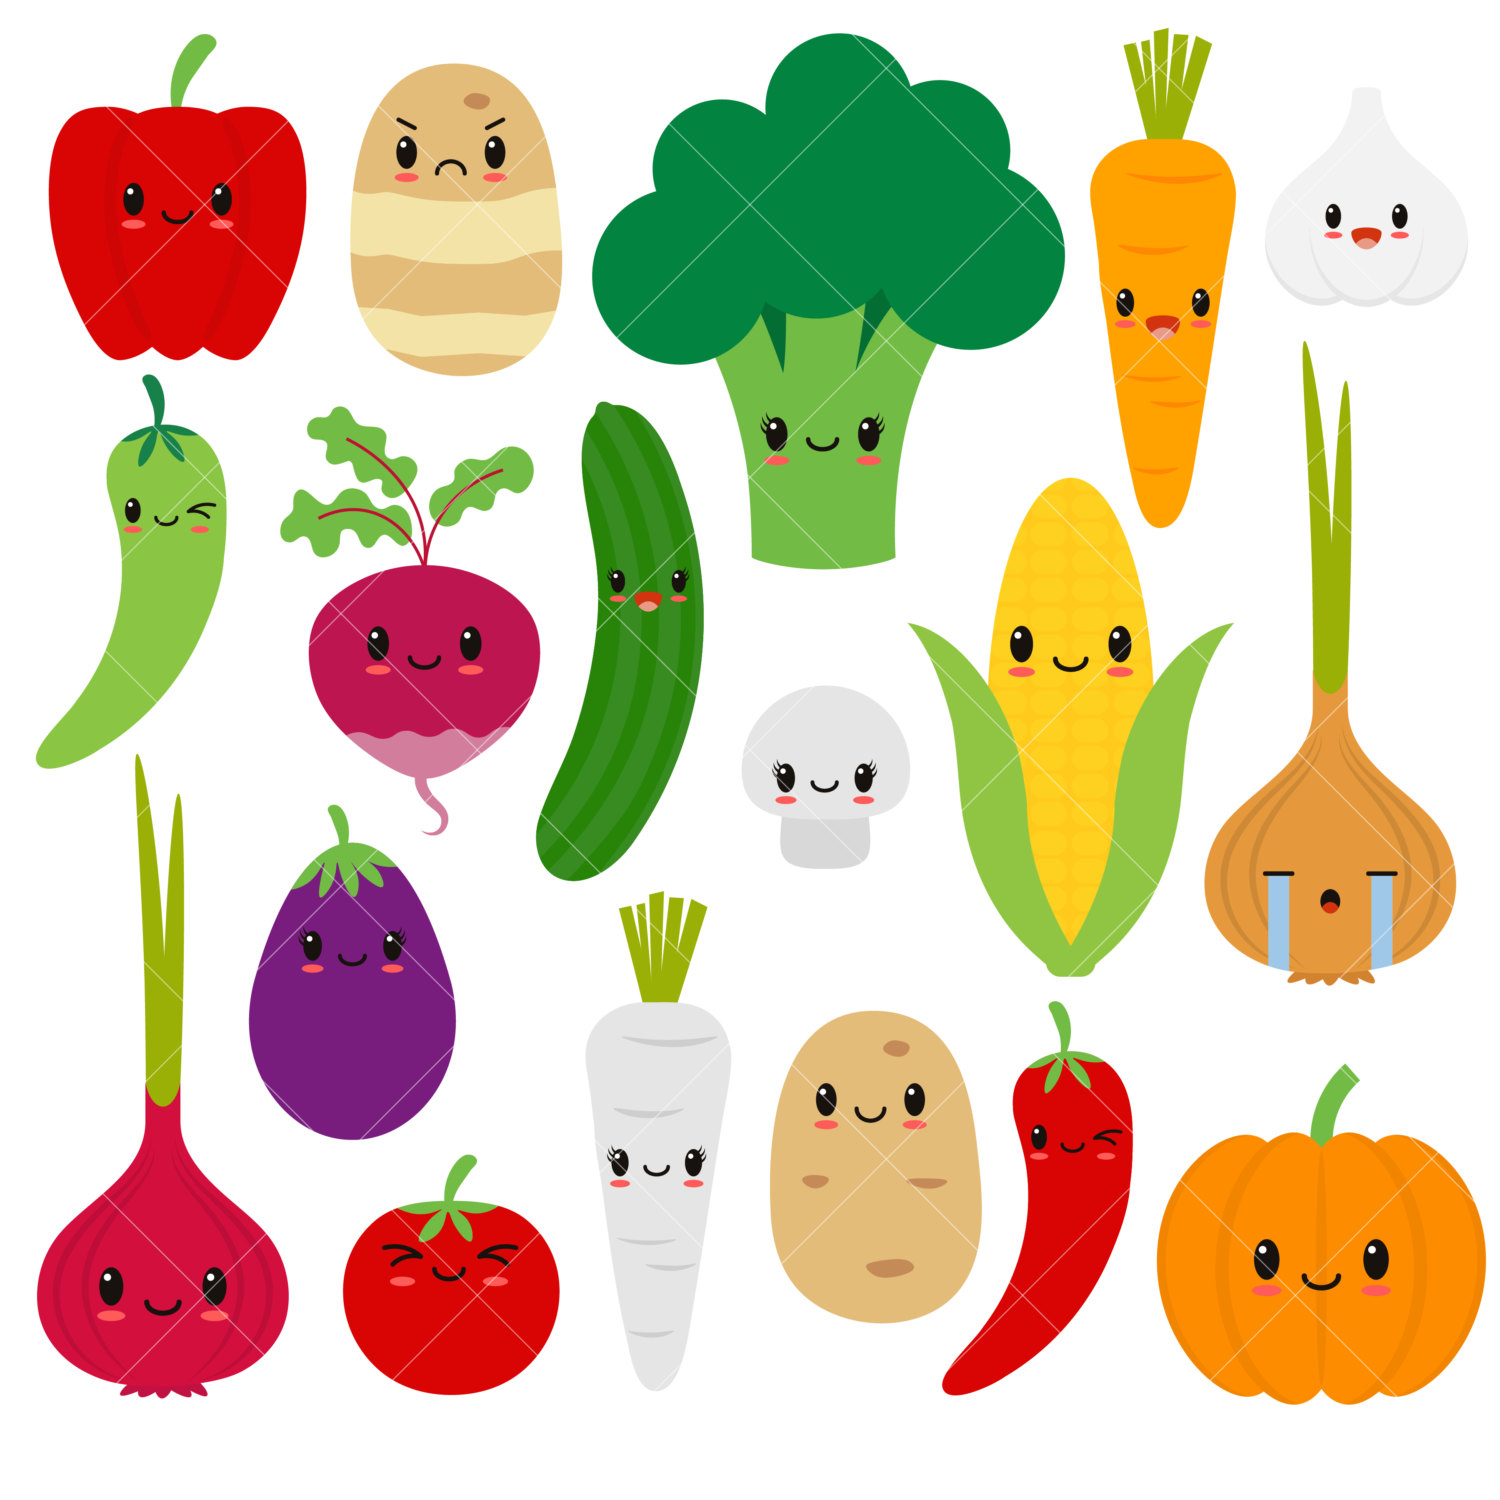 Drawn vegetable cute / clipart / Vegetables Etsy